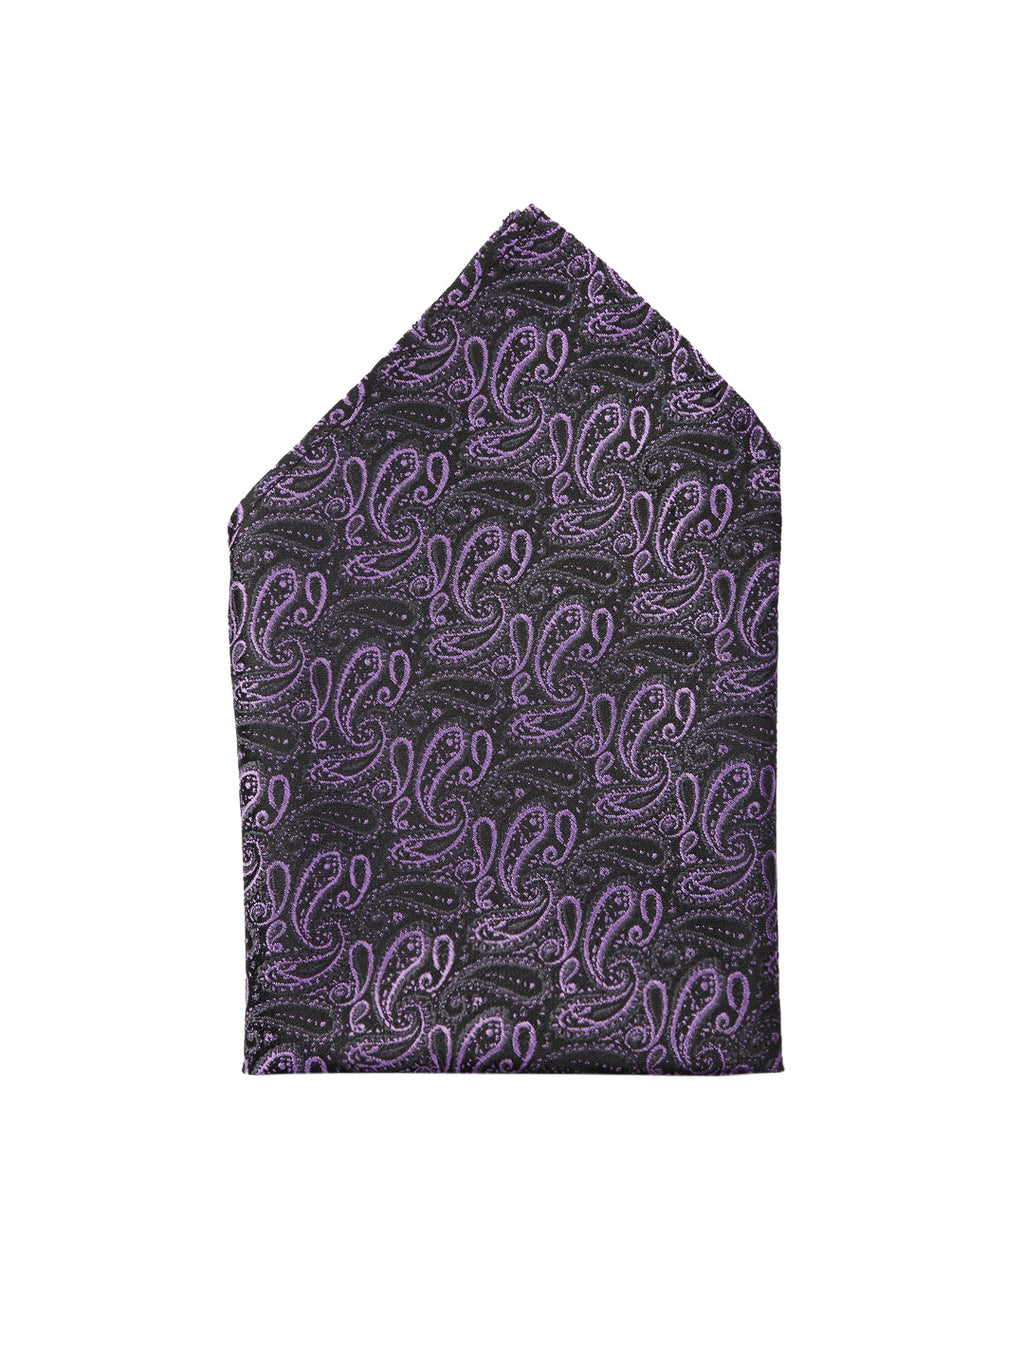 Zido Pocket Square for Men PSQ714